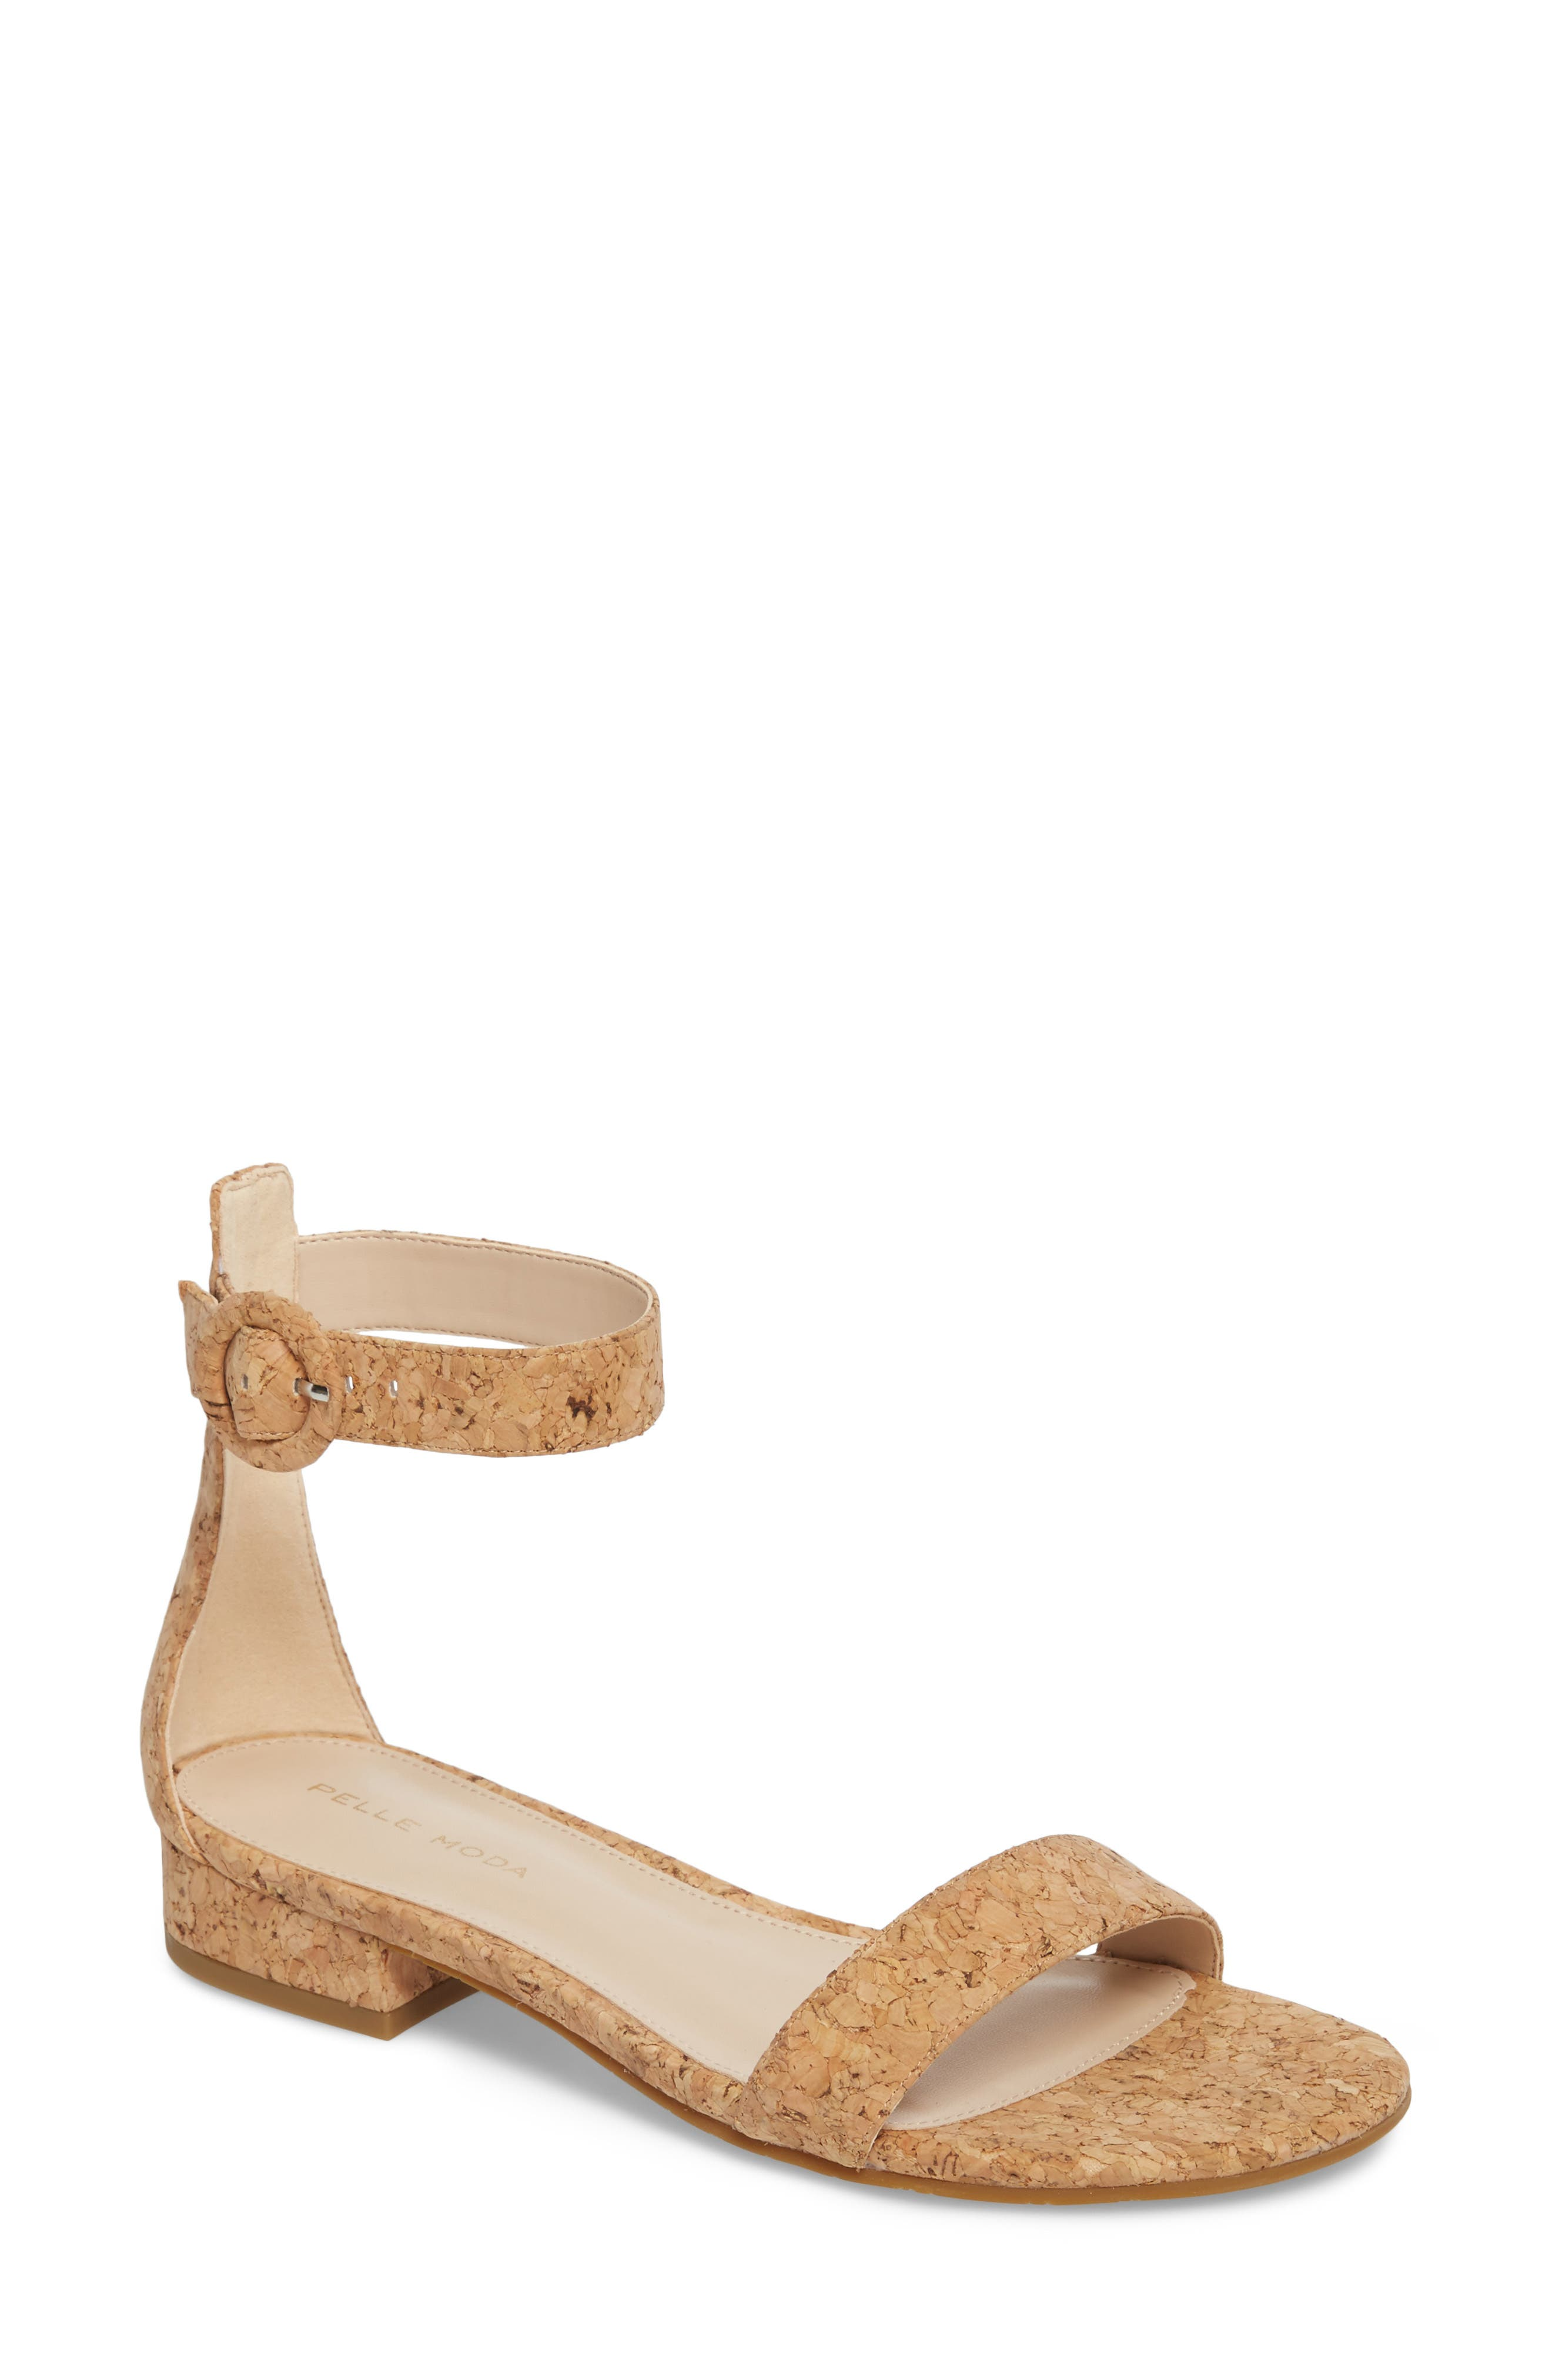 A minimalist flat sandal with a flexible sole is styled with a slim ankle strap anchored by a covered ring buckle. Style Name: Pelle Moda Newport Sandal (Women). Style Number: 5479929. Available in stores.